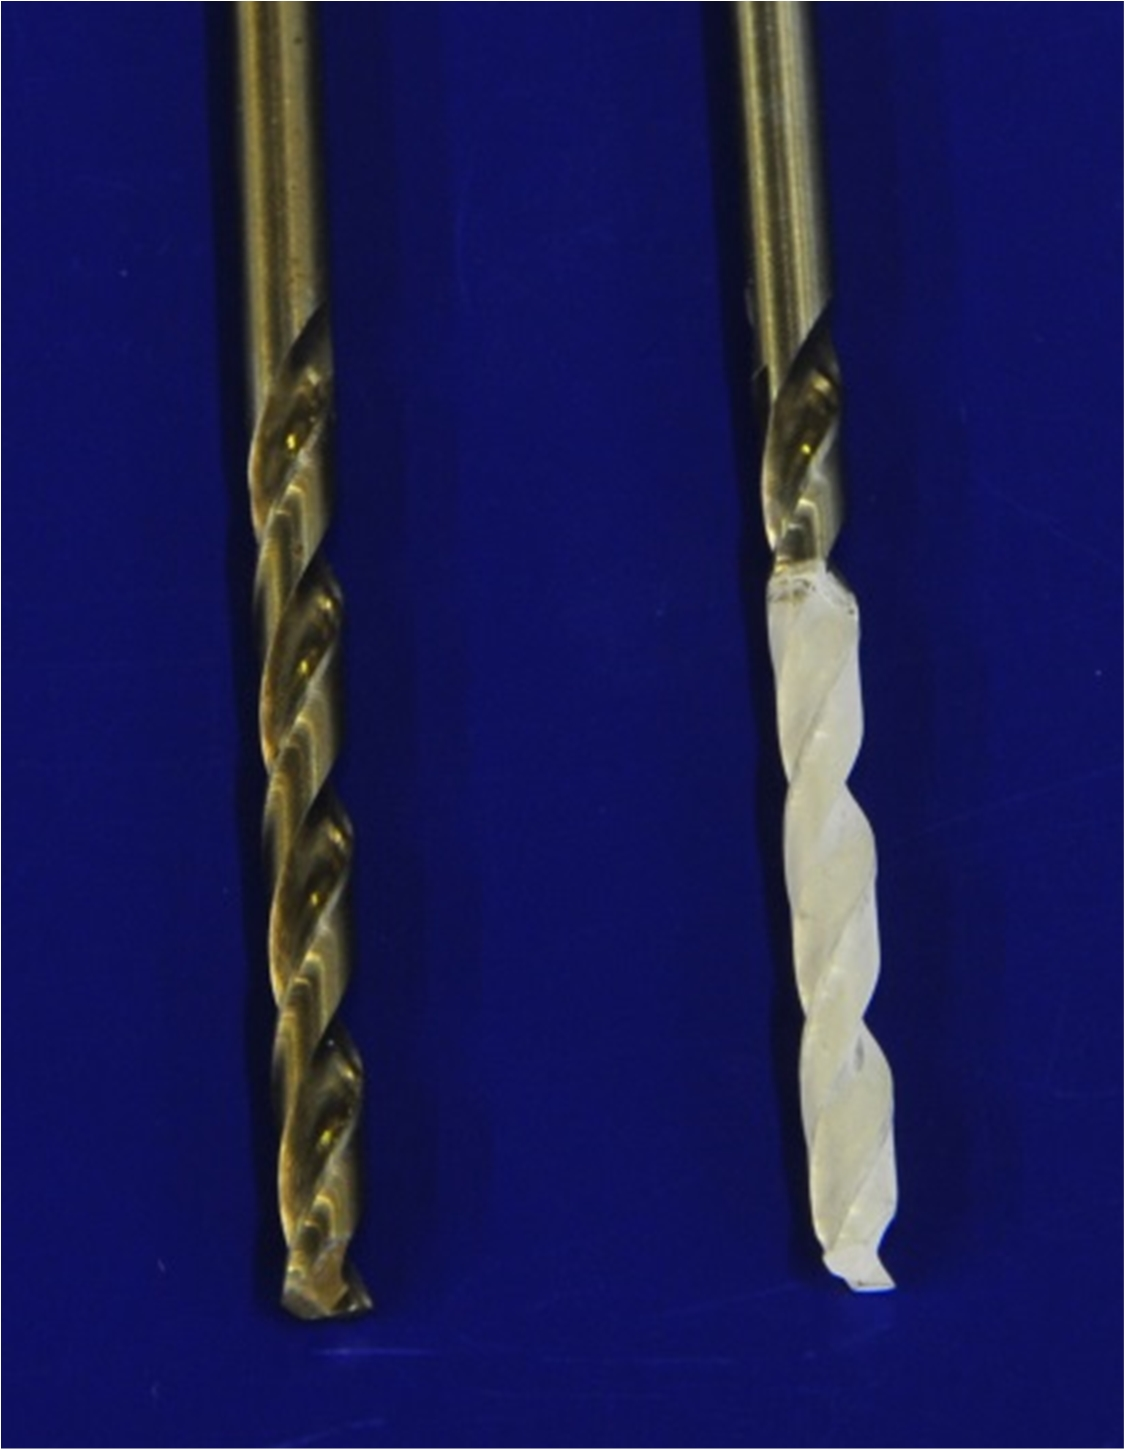 Photo of two drill bits on a dark blue background, one has a white coating on the bottom half